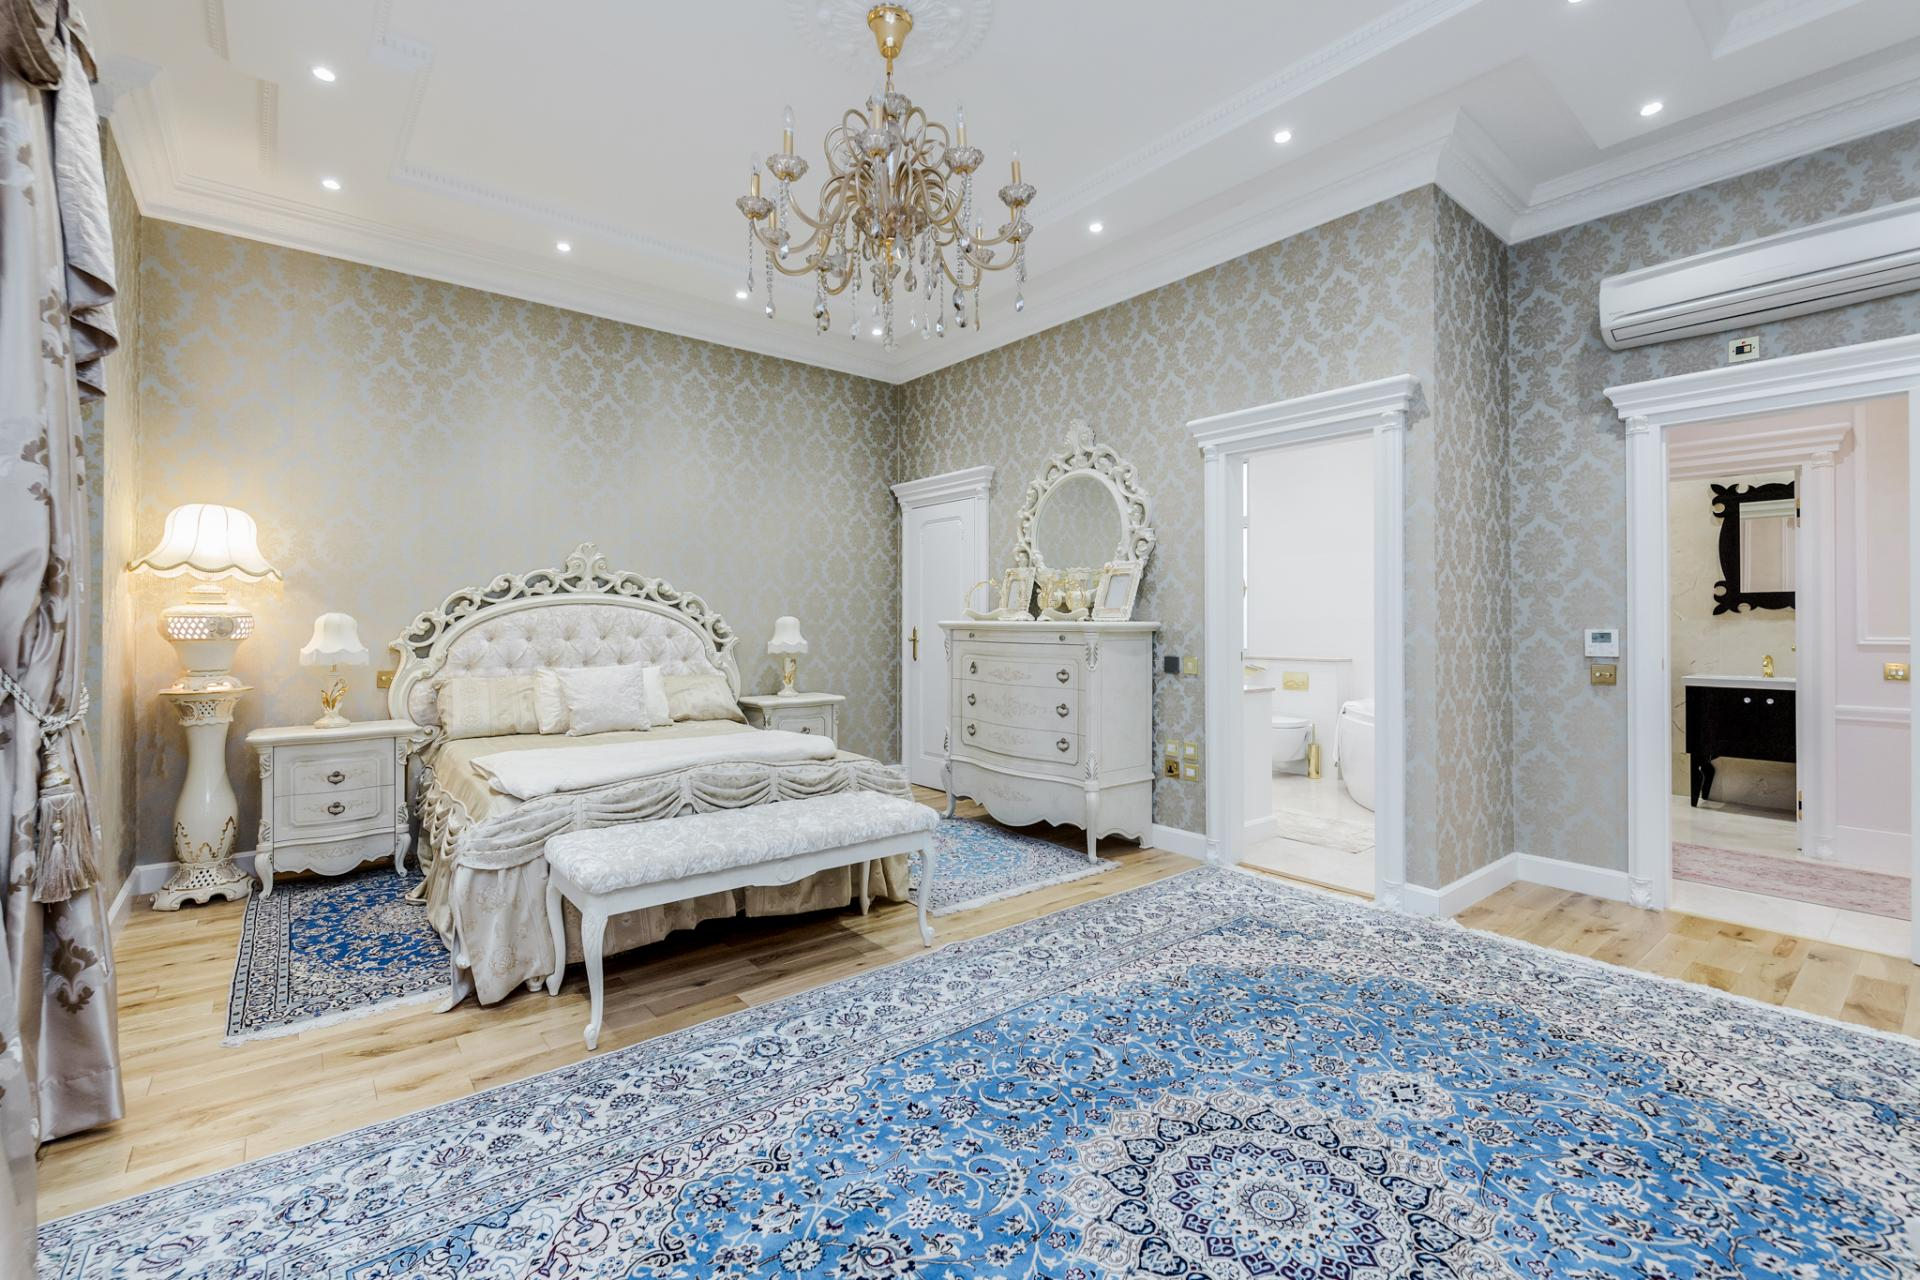 Luxurious bedroom at Grosvenor Square Apartment, Mayfair, London